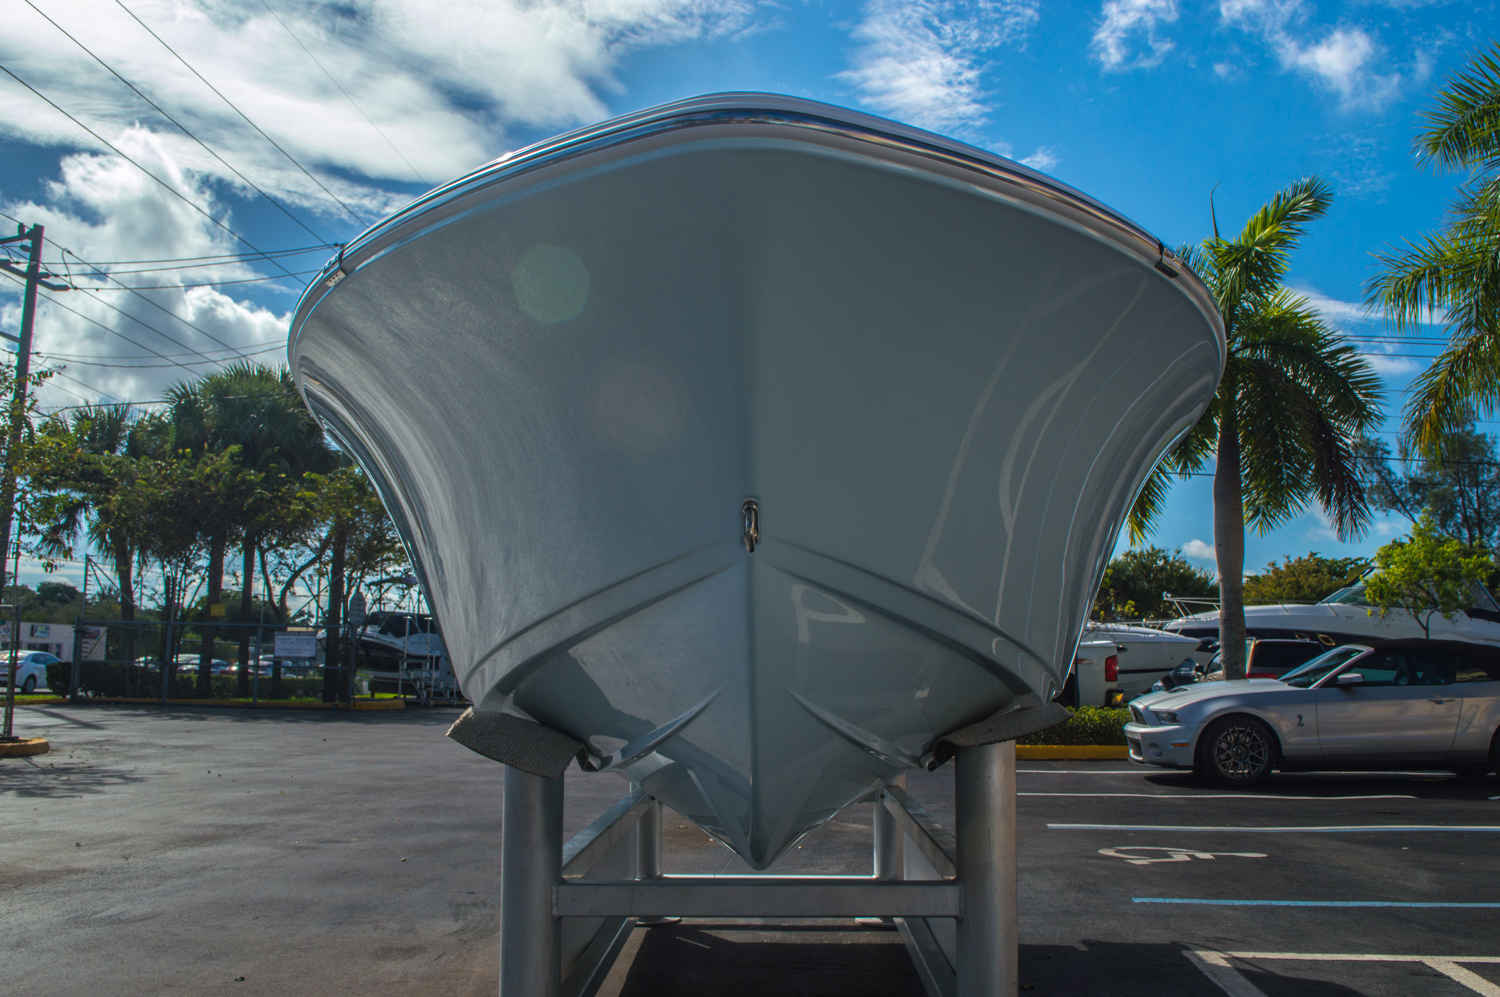 Thumbnail 3 for New 2016 Sportsman 17 Island Reef boat for sale in Vero Beach, FL